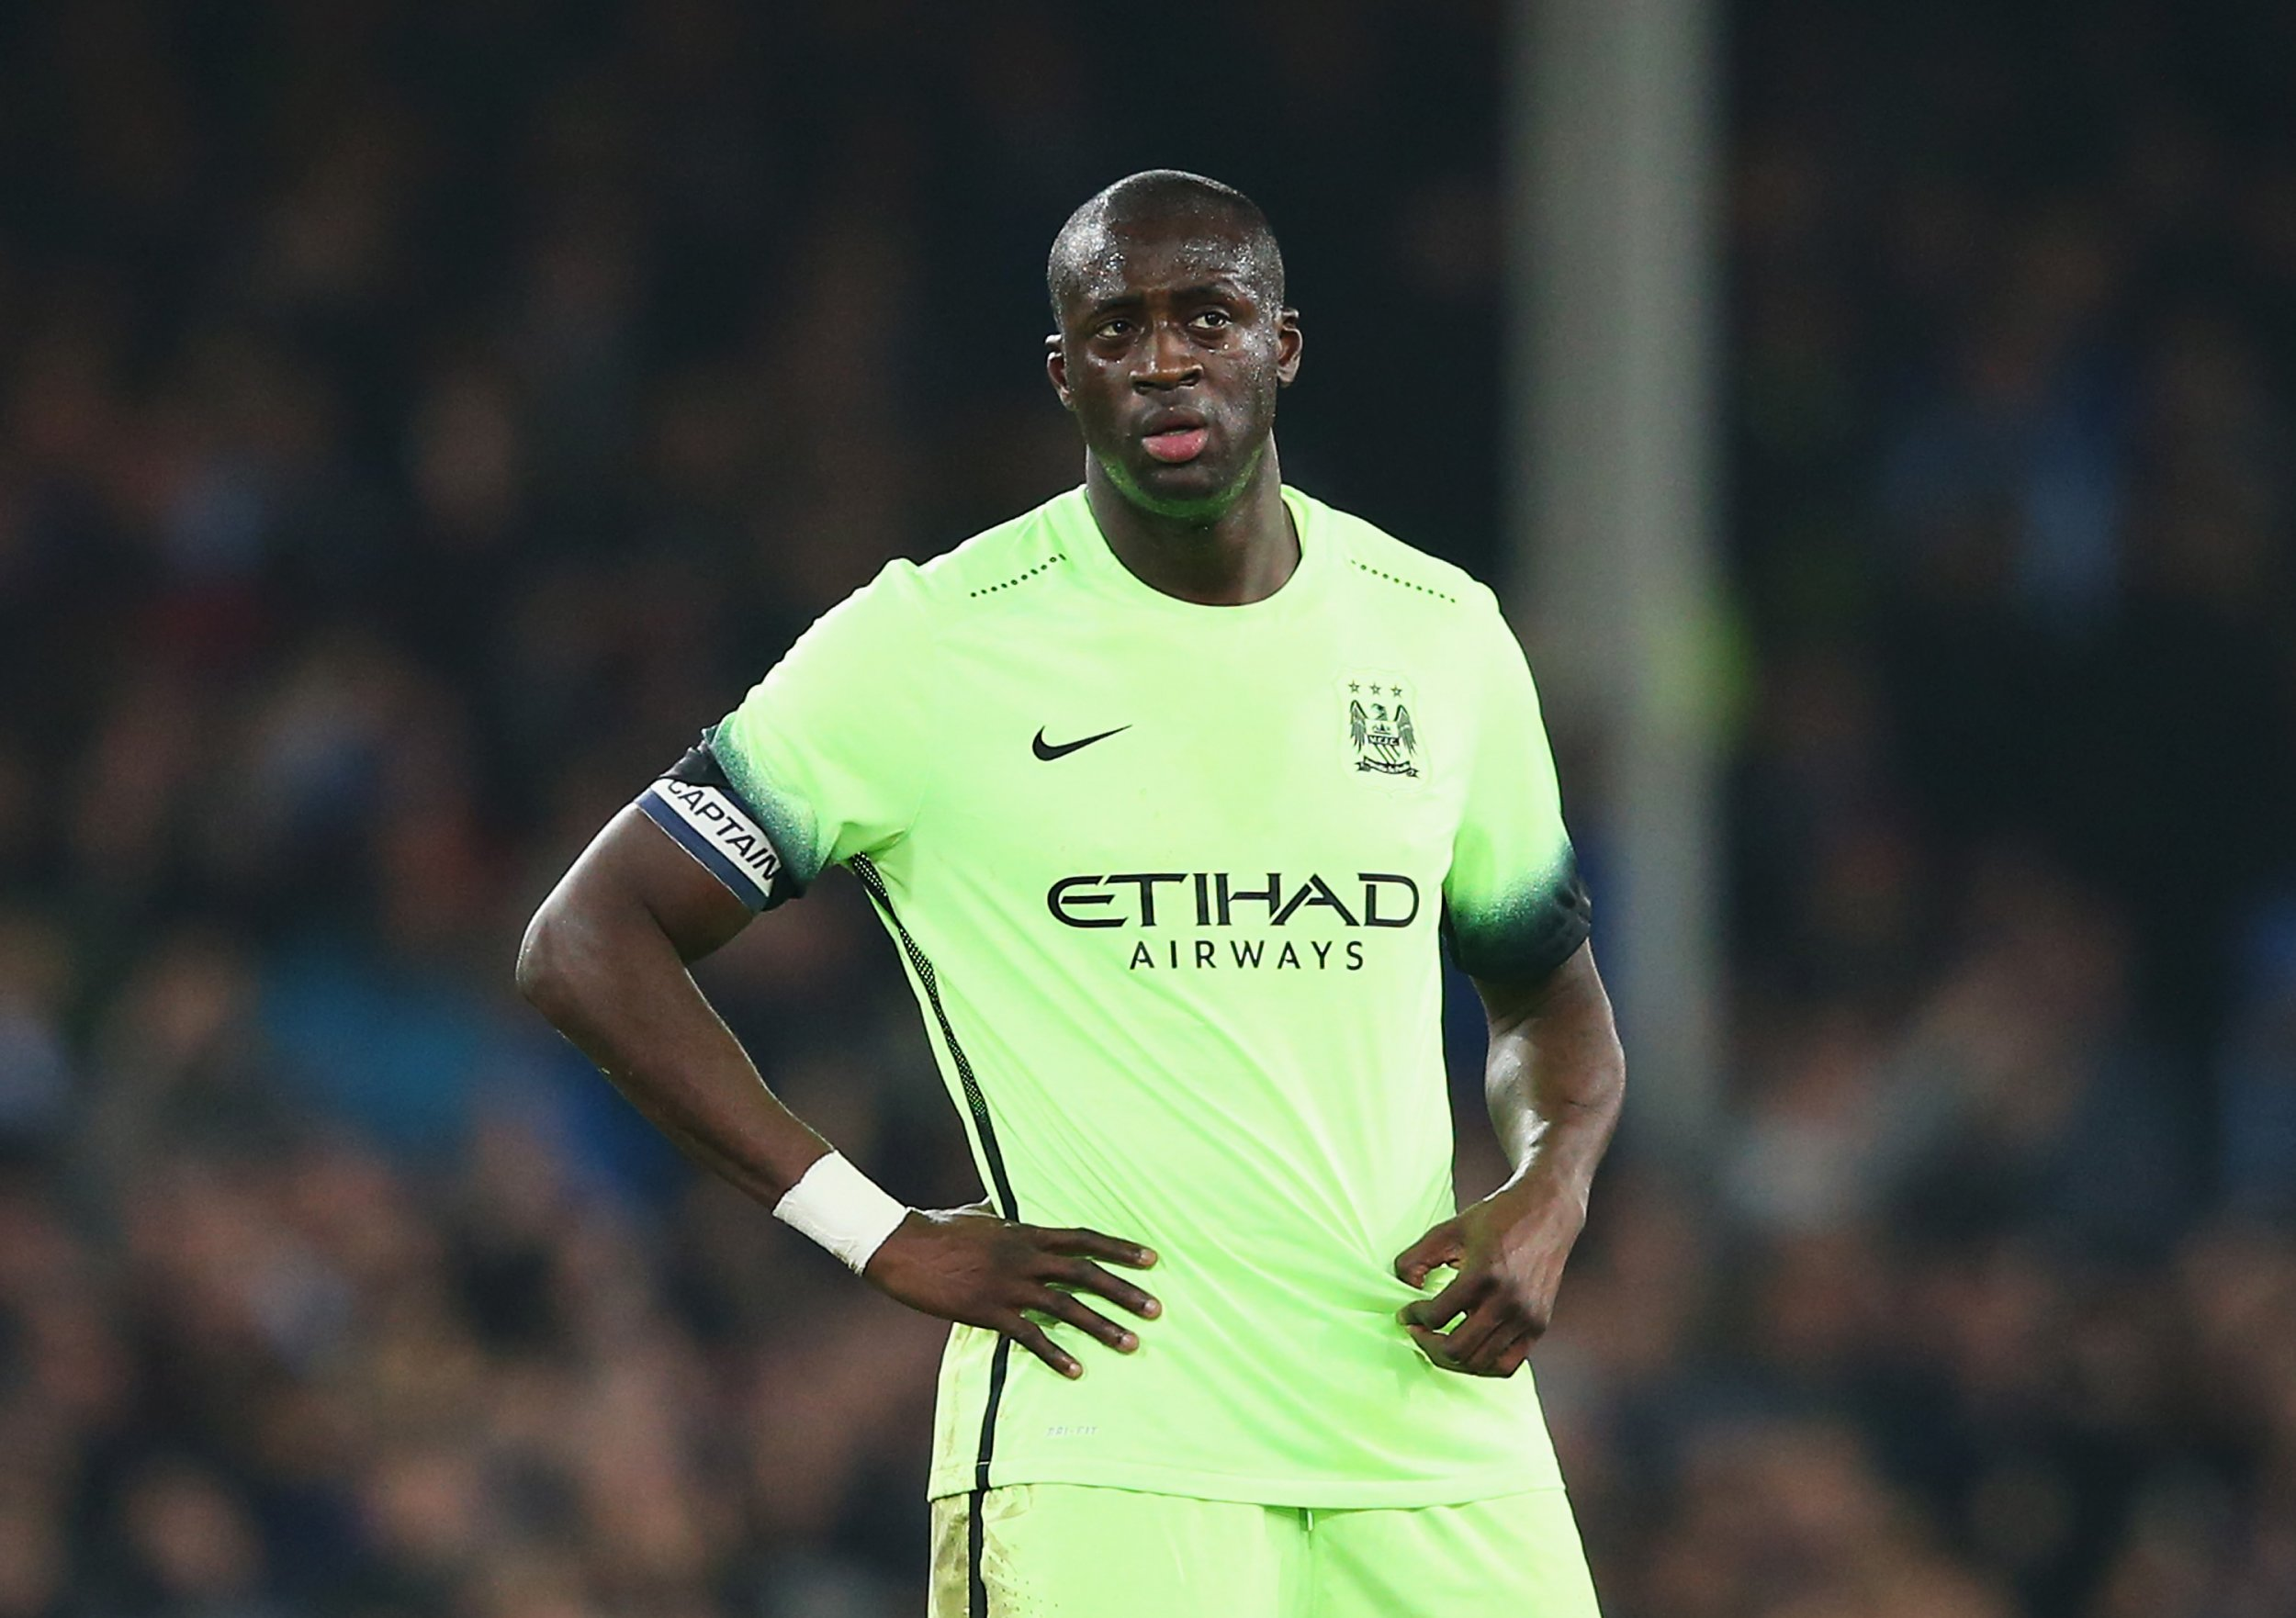 Manchester City s Yaya Toure Could Earn Over £500 000 a Week in